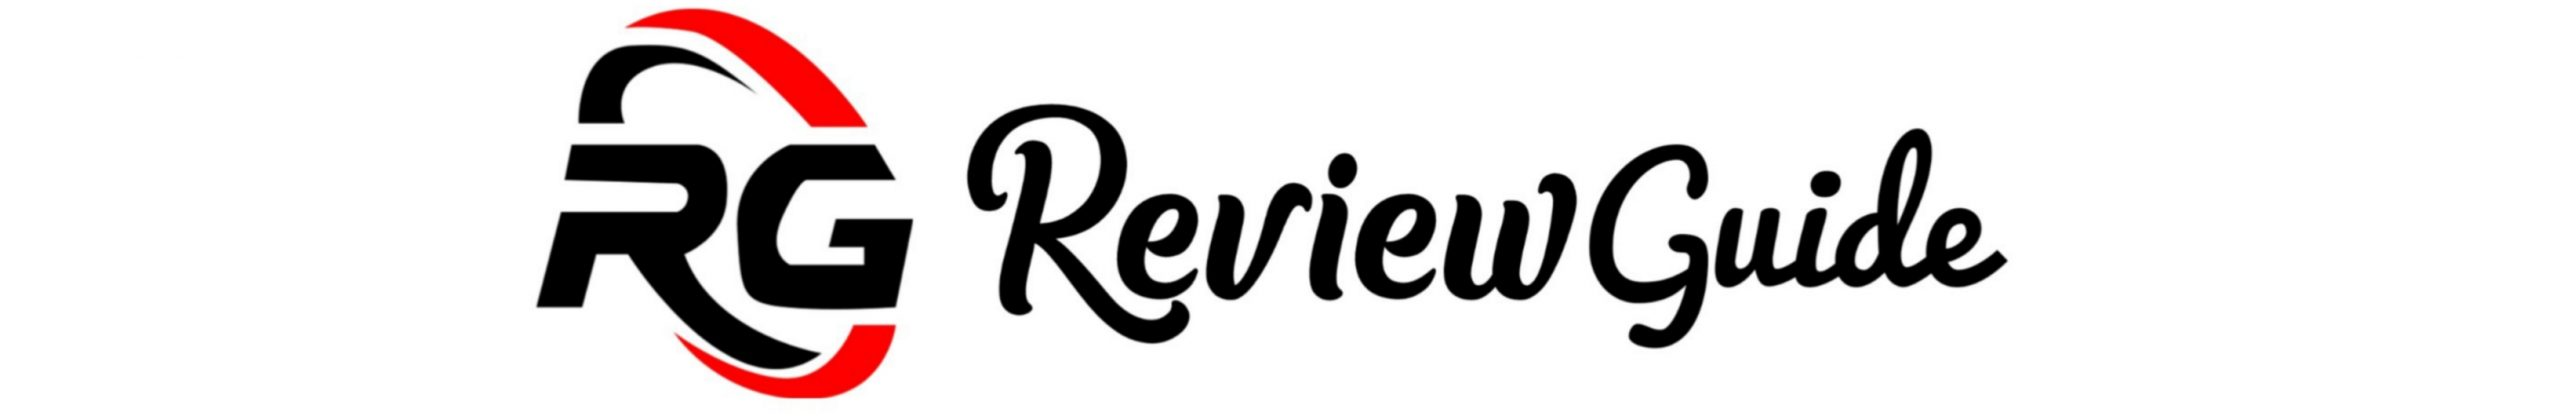 Reviewguide